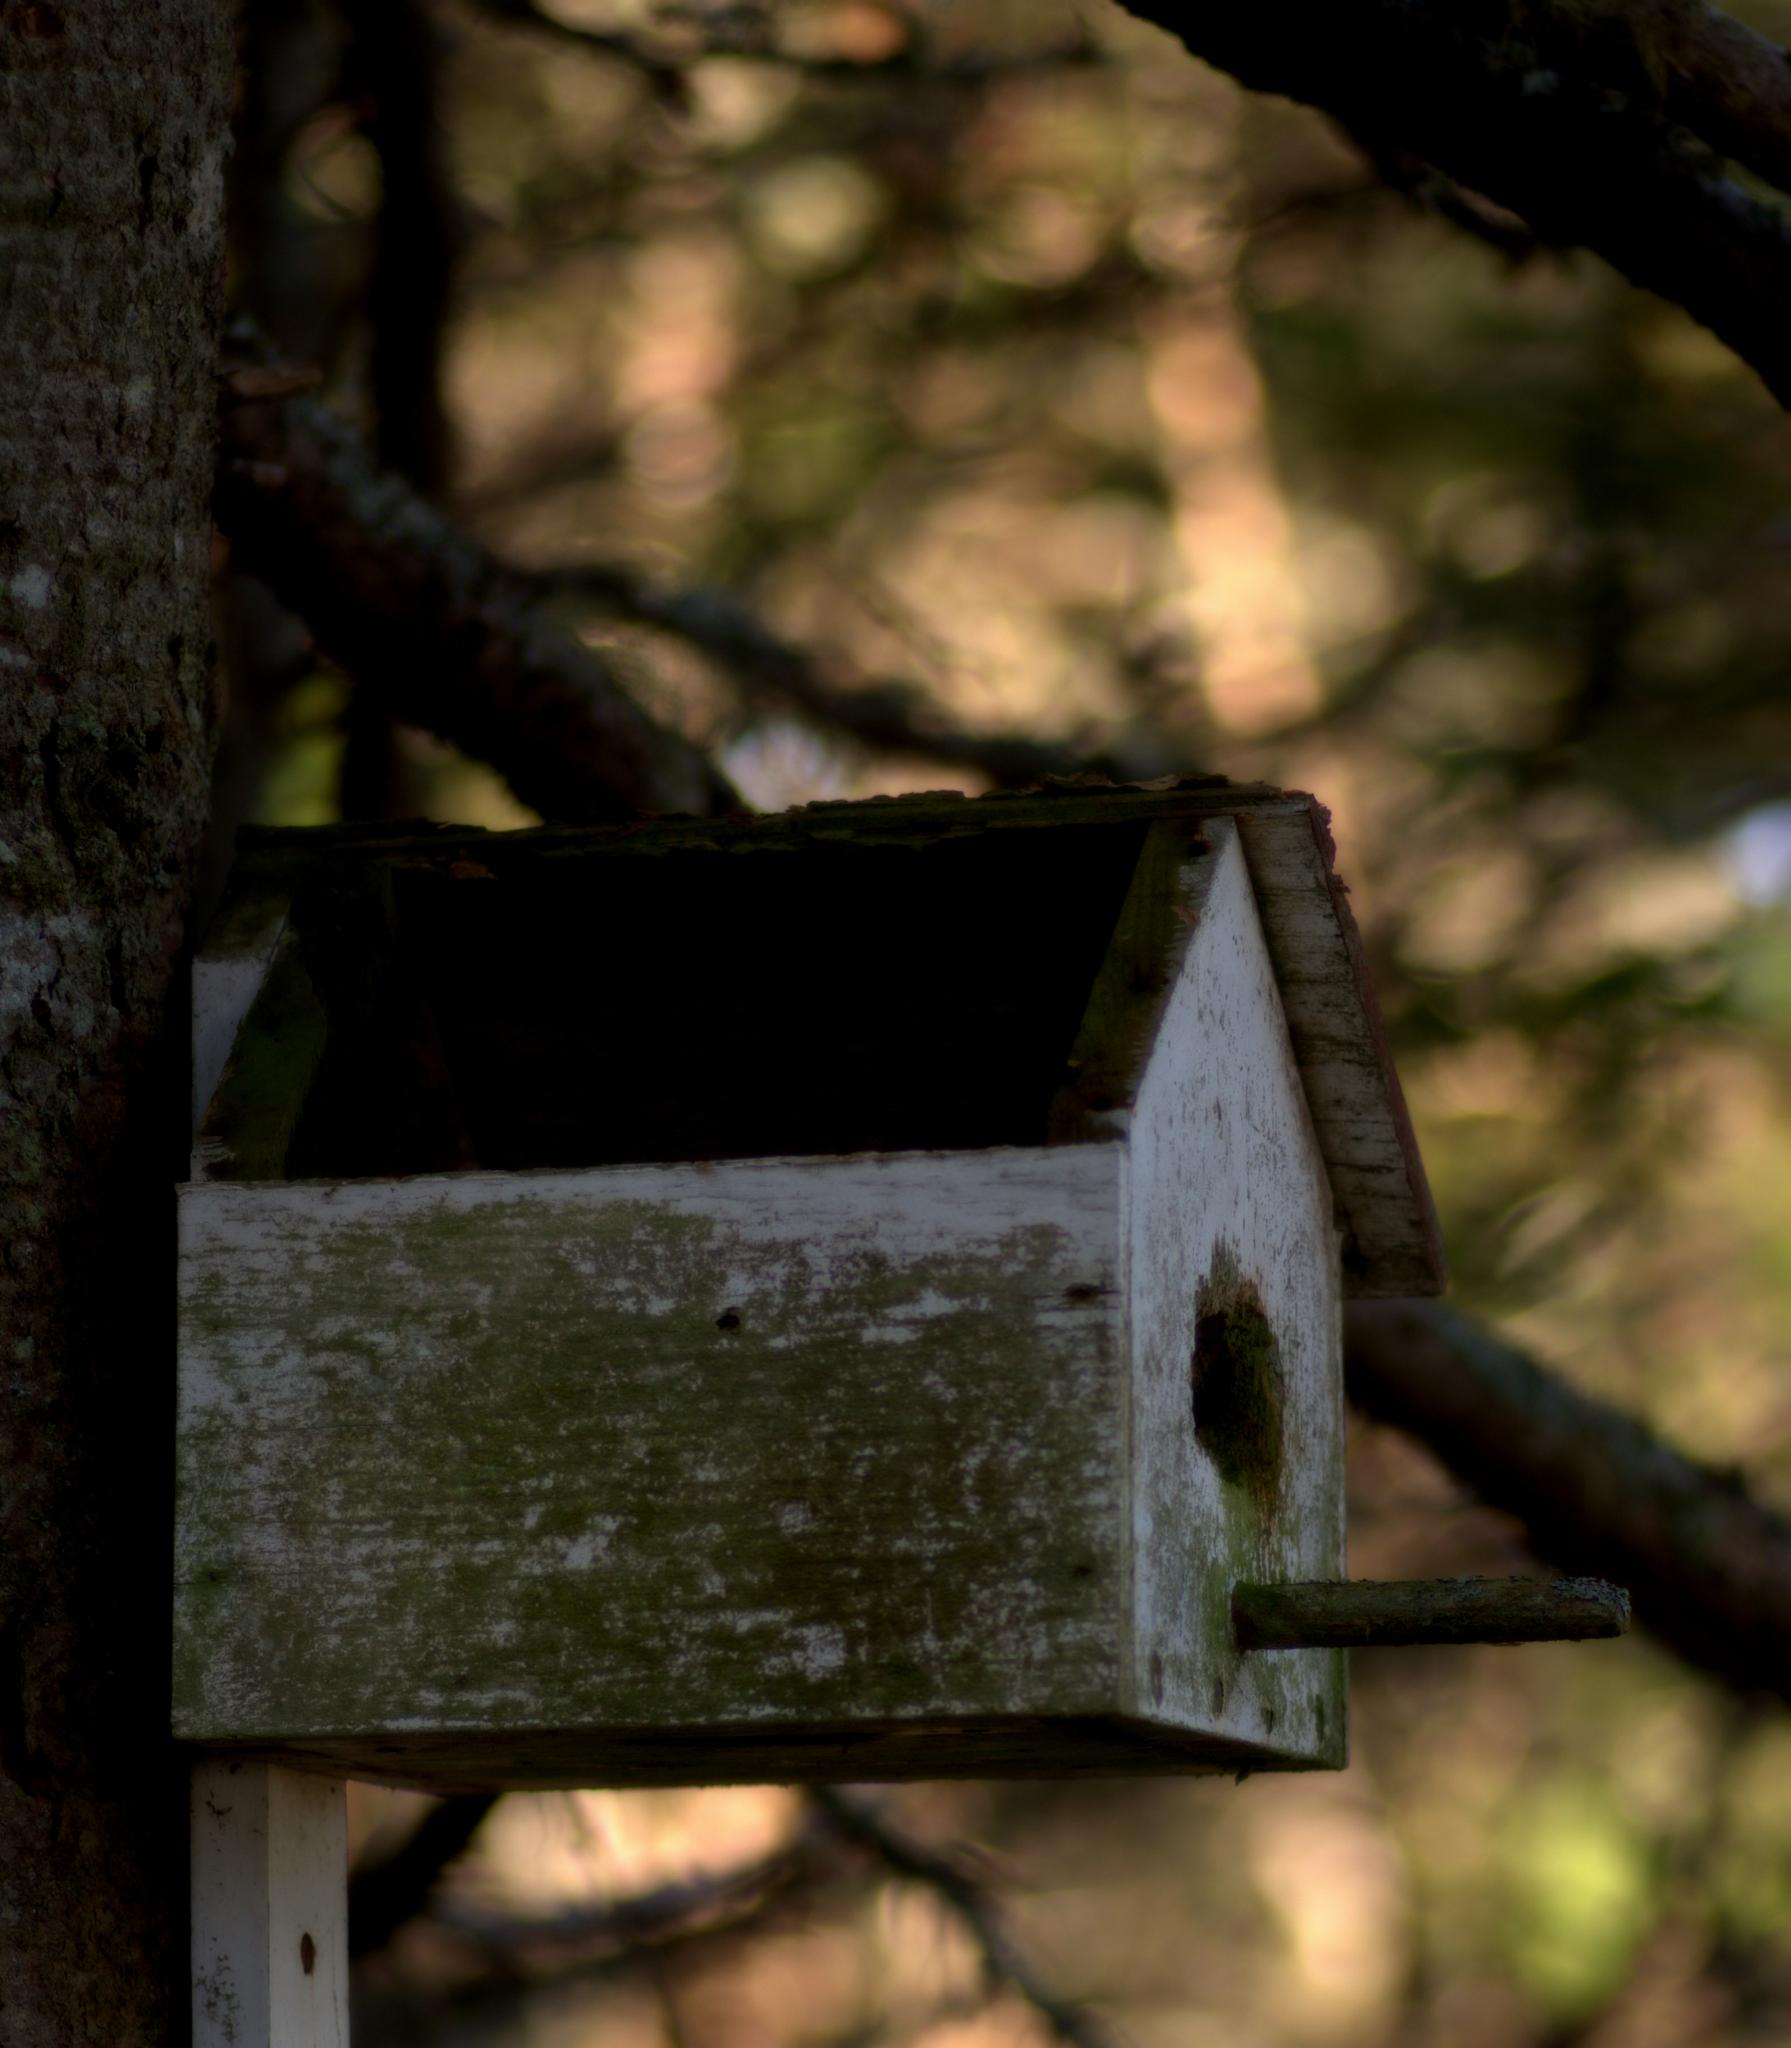 Abandoned Birdhouse by Lee Campbell